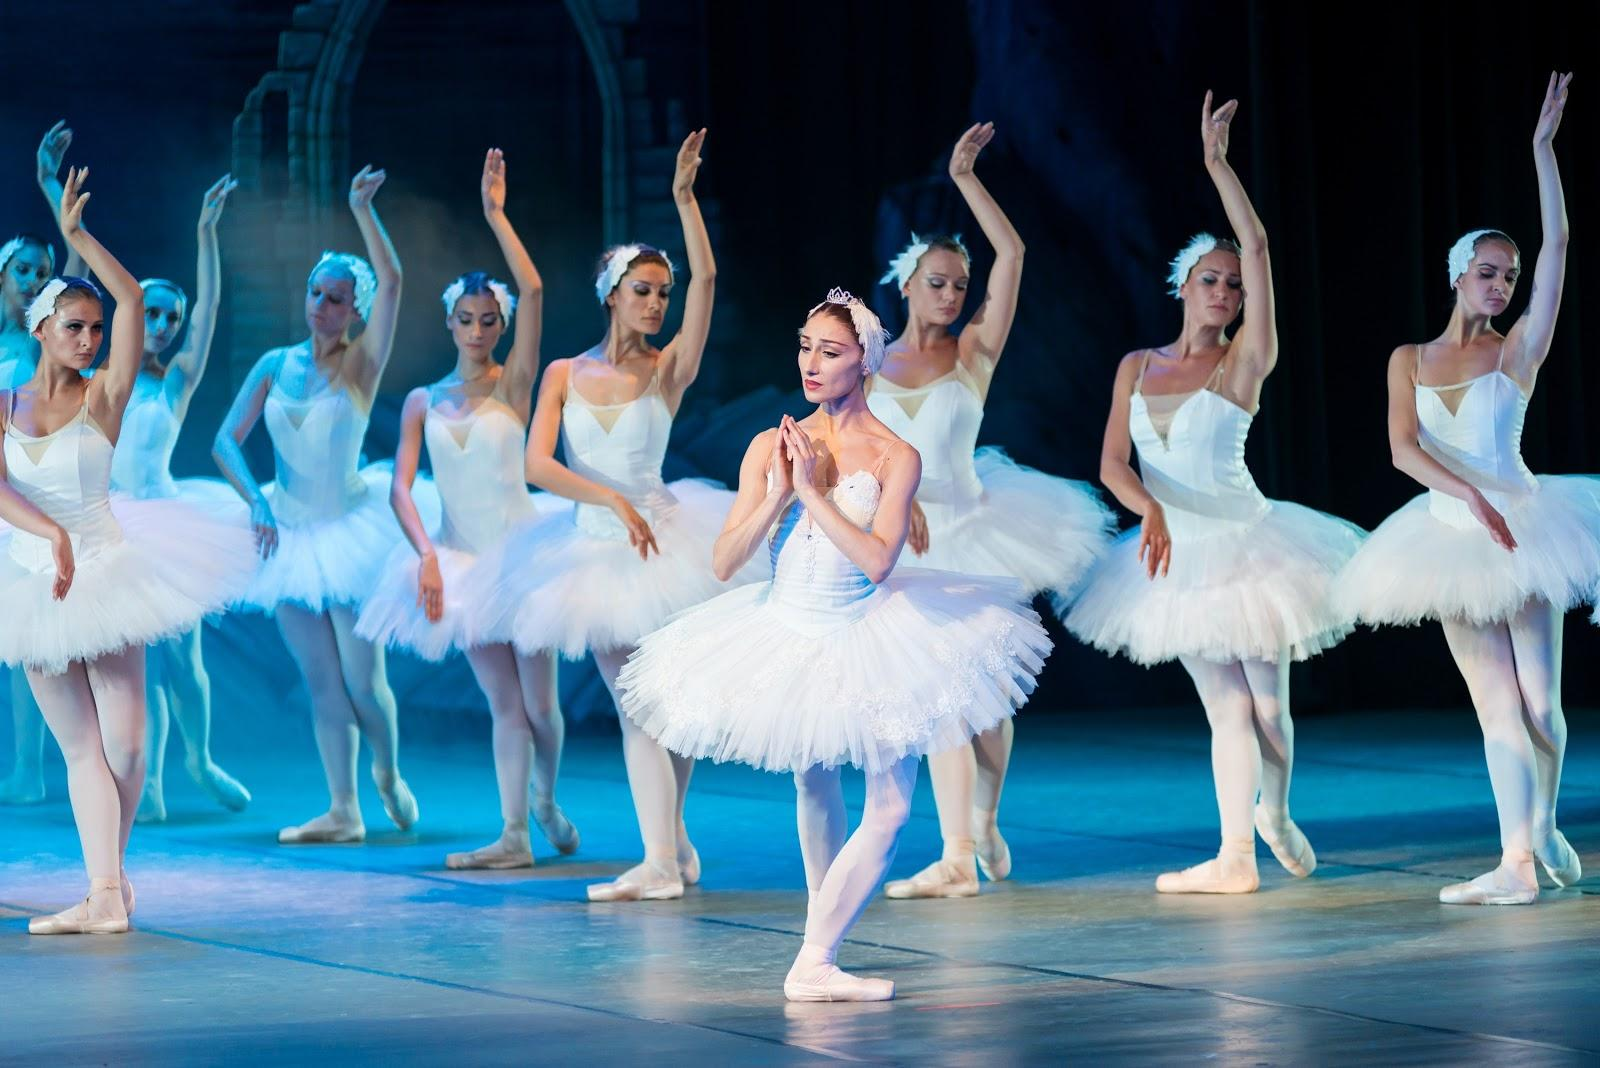 show ballet on the theater stage